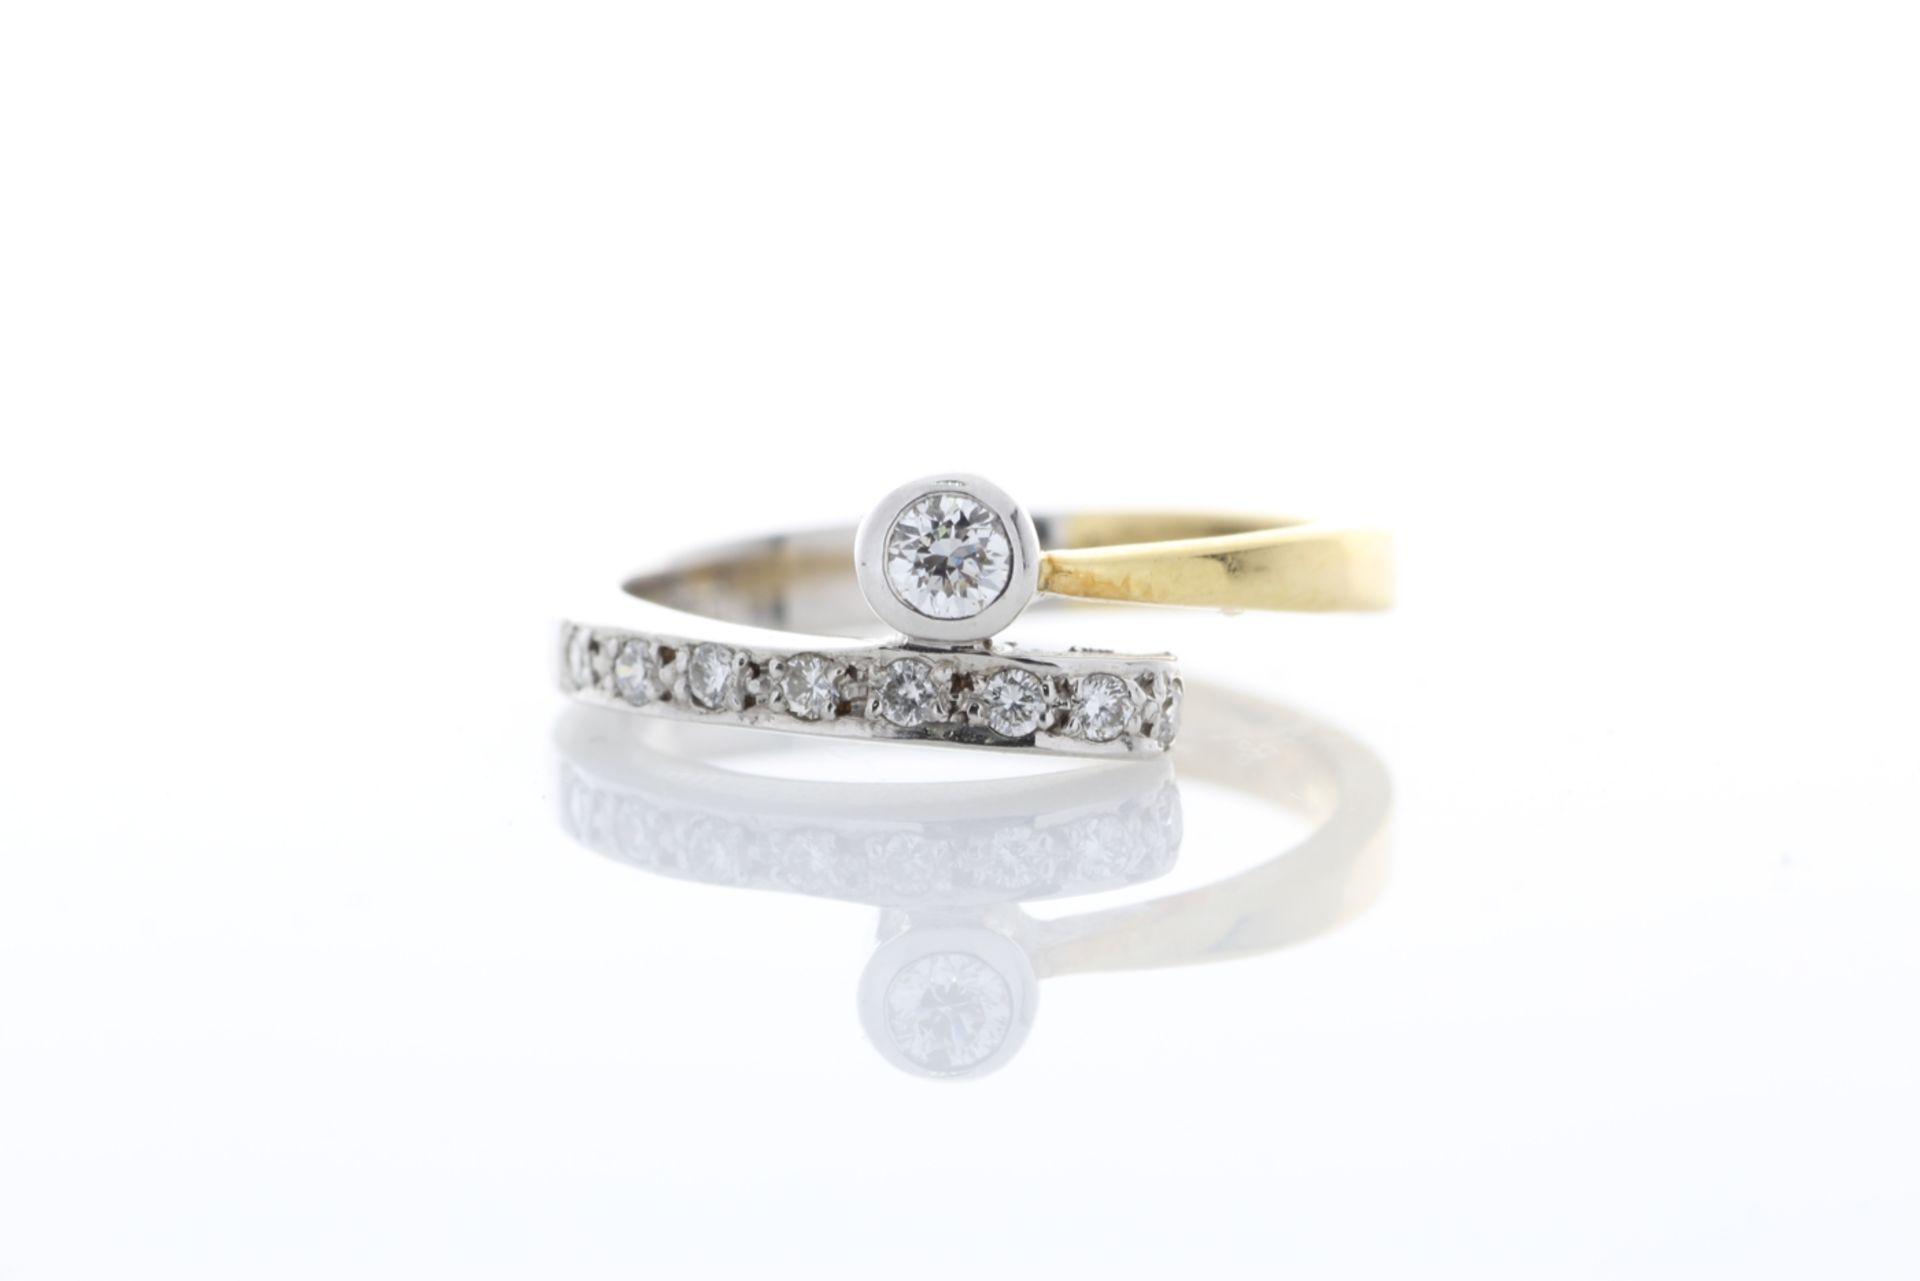 18ct Single Stone Rub Over With Stone Set Shoulders Diamond Ring 0.11 Carats - Valued by AGI £1, - Image 5 of 5